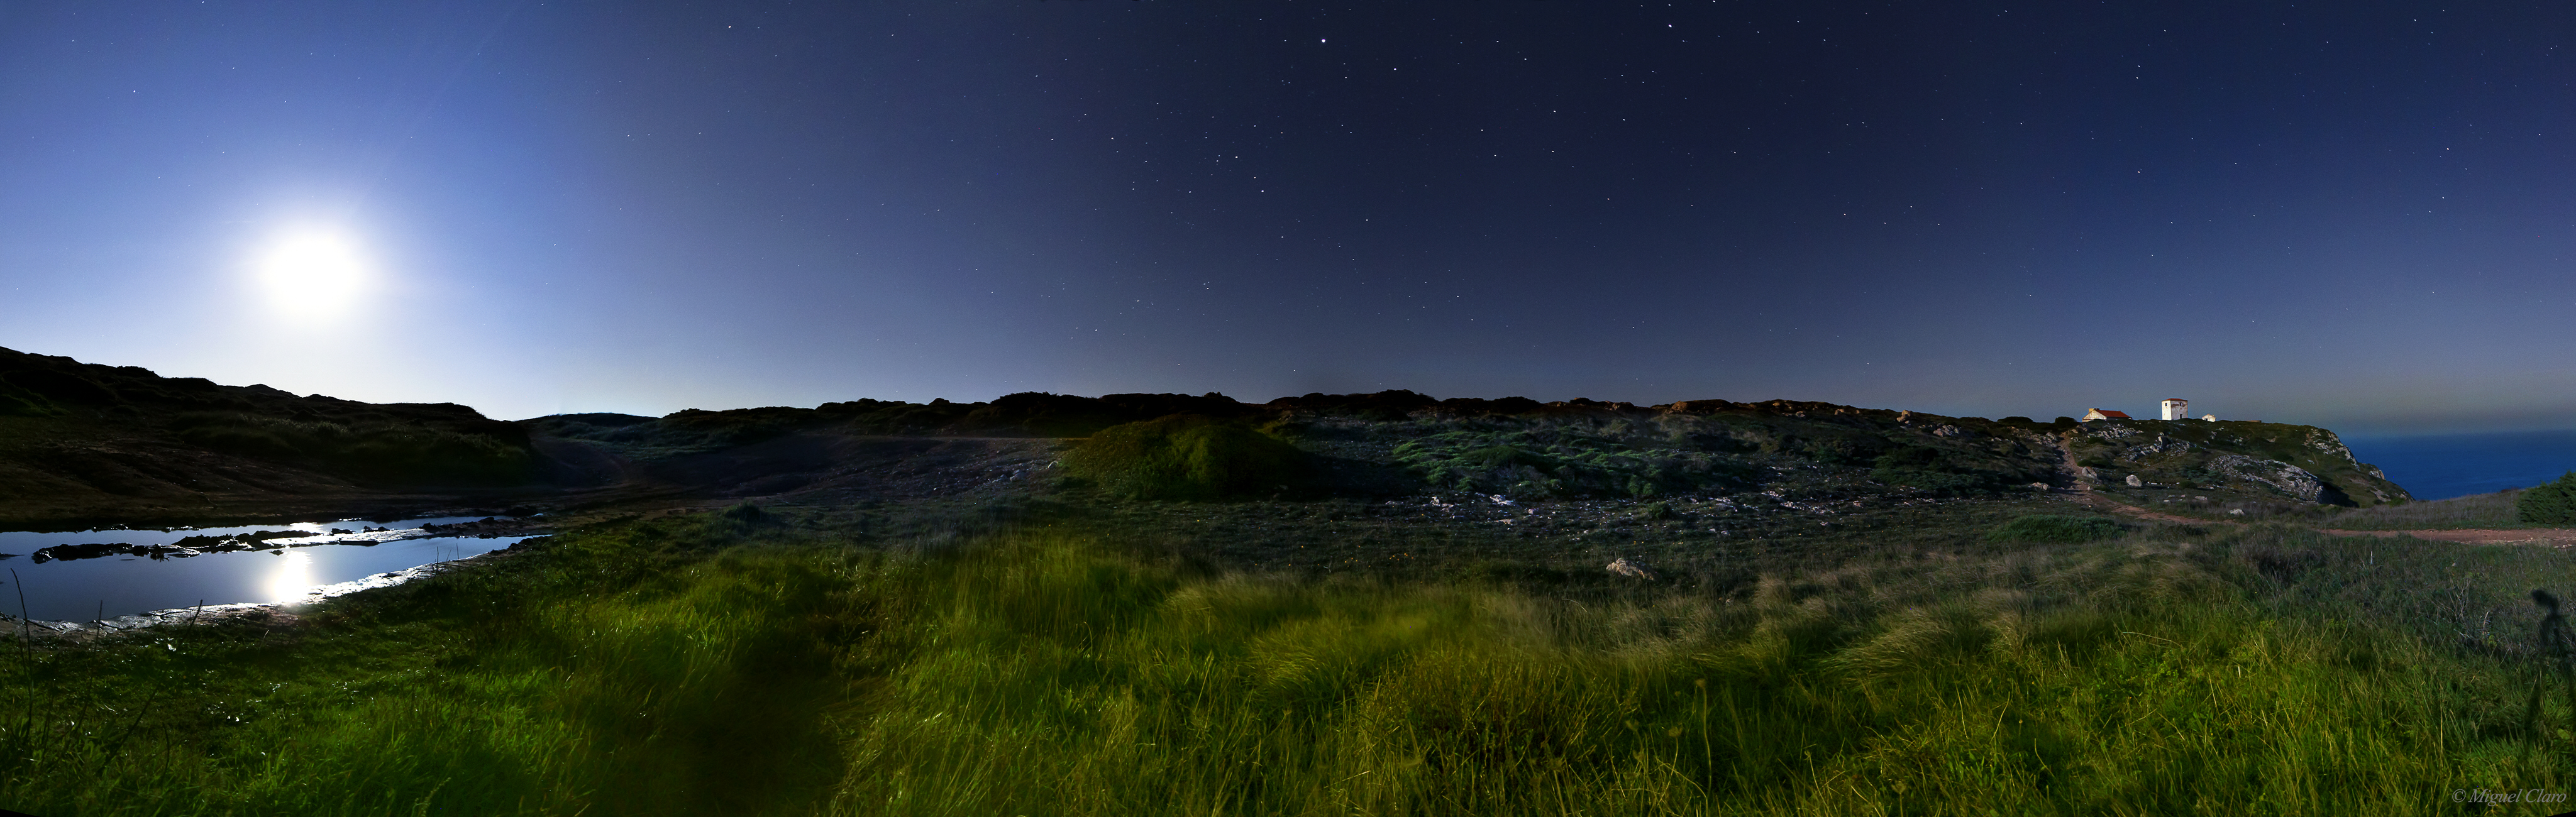 panoramic moon earth - photo #20